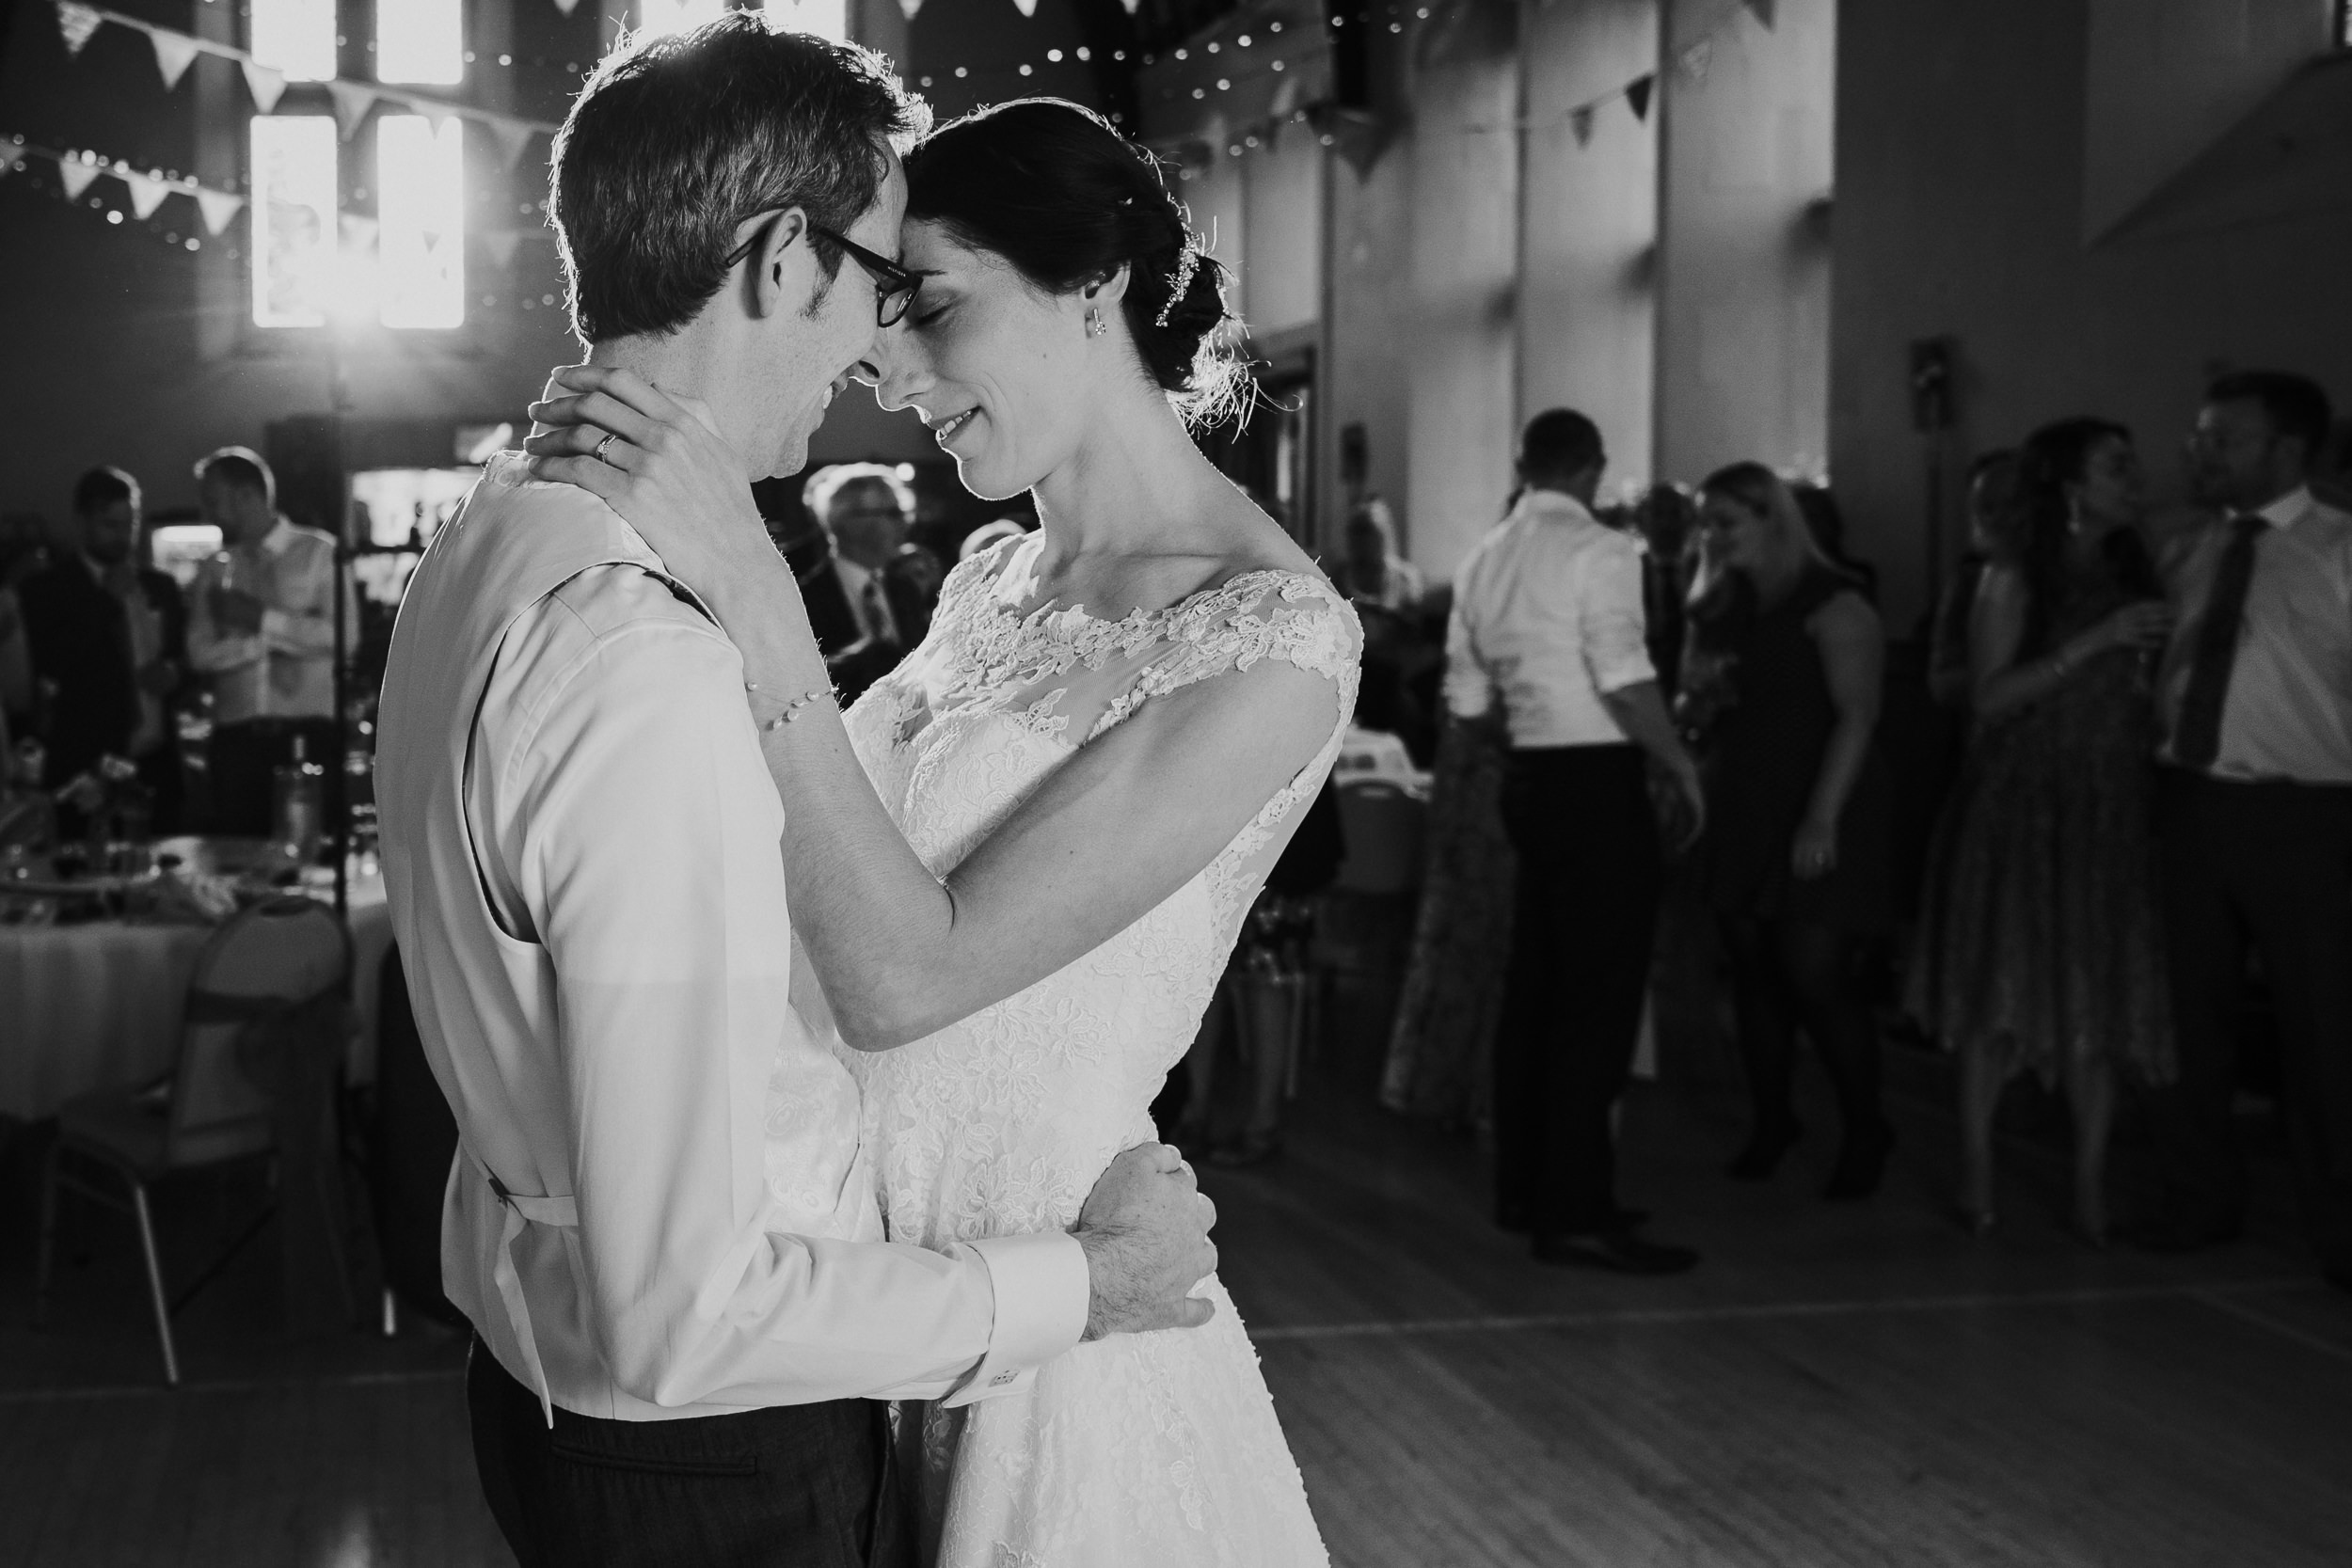 Westbury on Trym Wedding - The Bride and Groom dancing together at the village hall